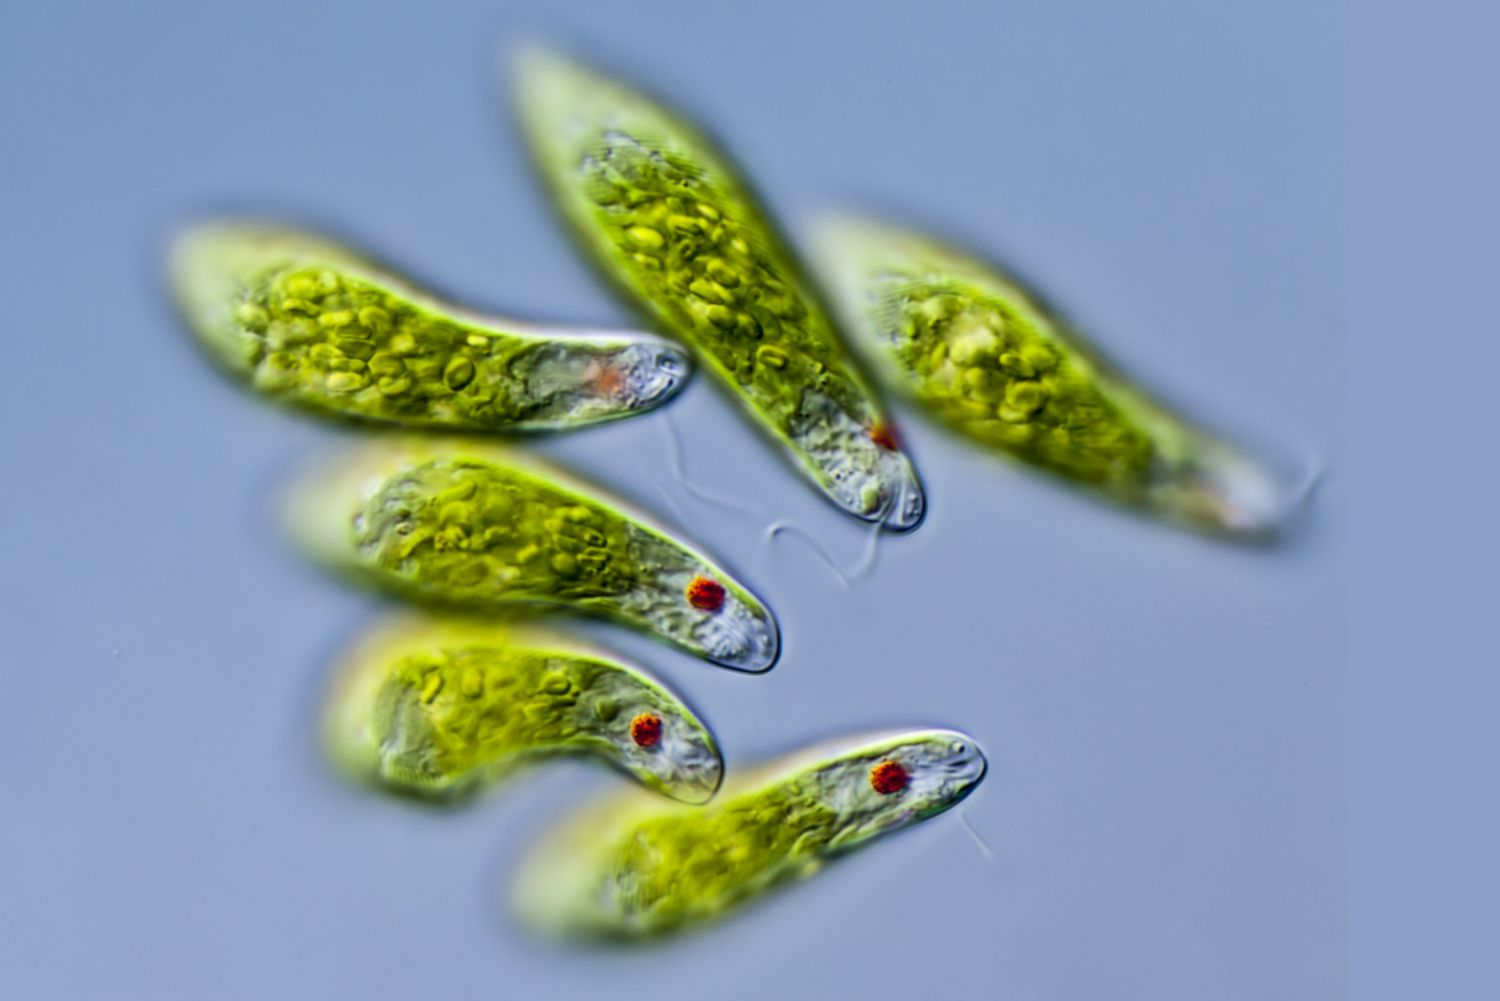 Euglena Cells - Anatomy and Reproduction